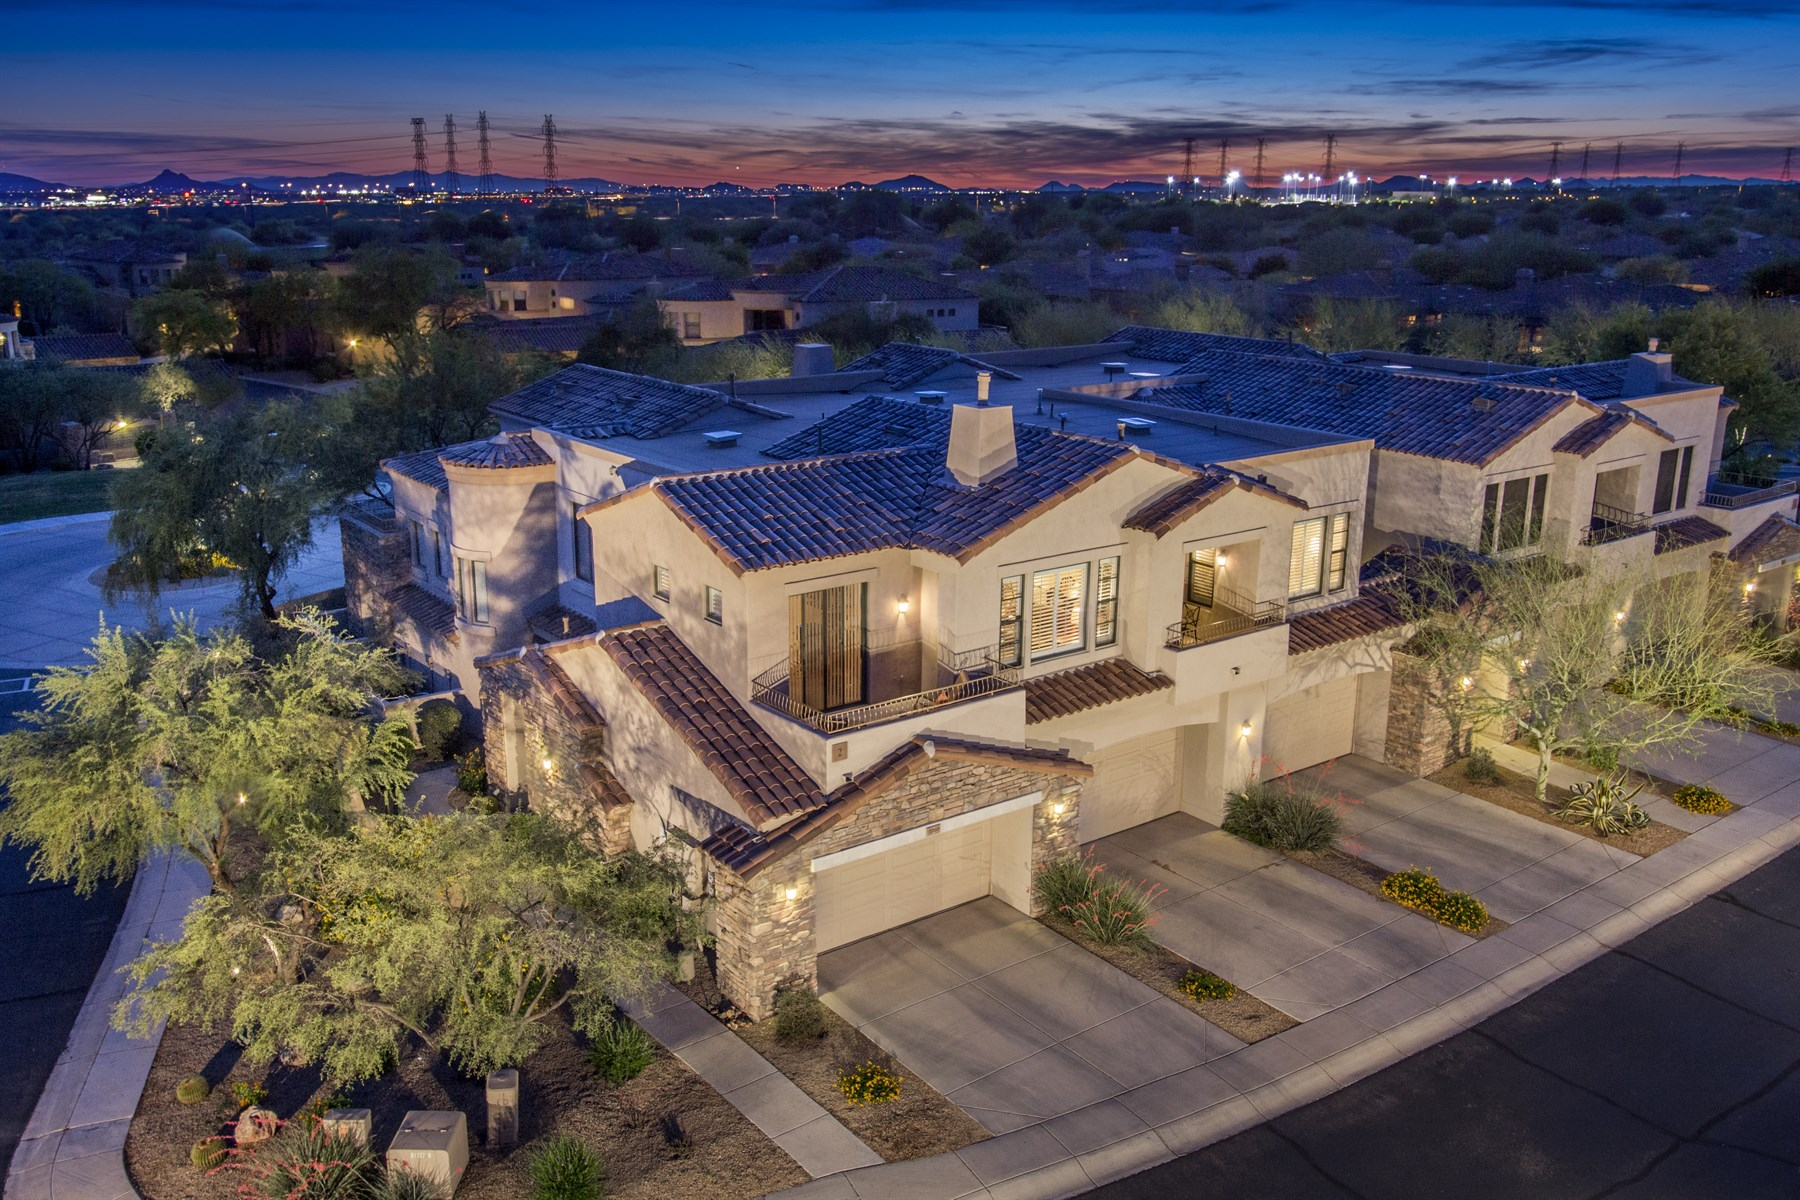 Apartment for Sale at Immaculately maintained, home offers convenient living with mountain views. 19550 N GRAYHAWK DR 2010 Scottsdale, Arizona 85255 United States